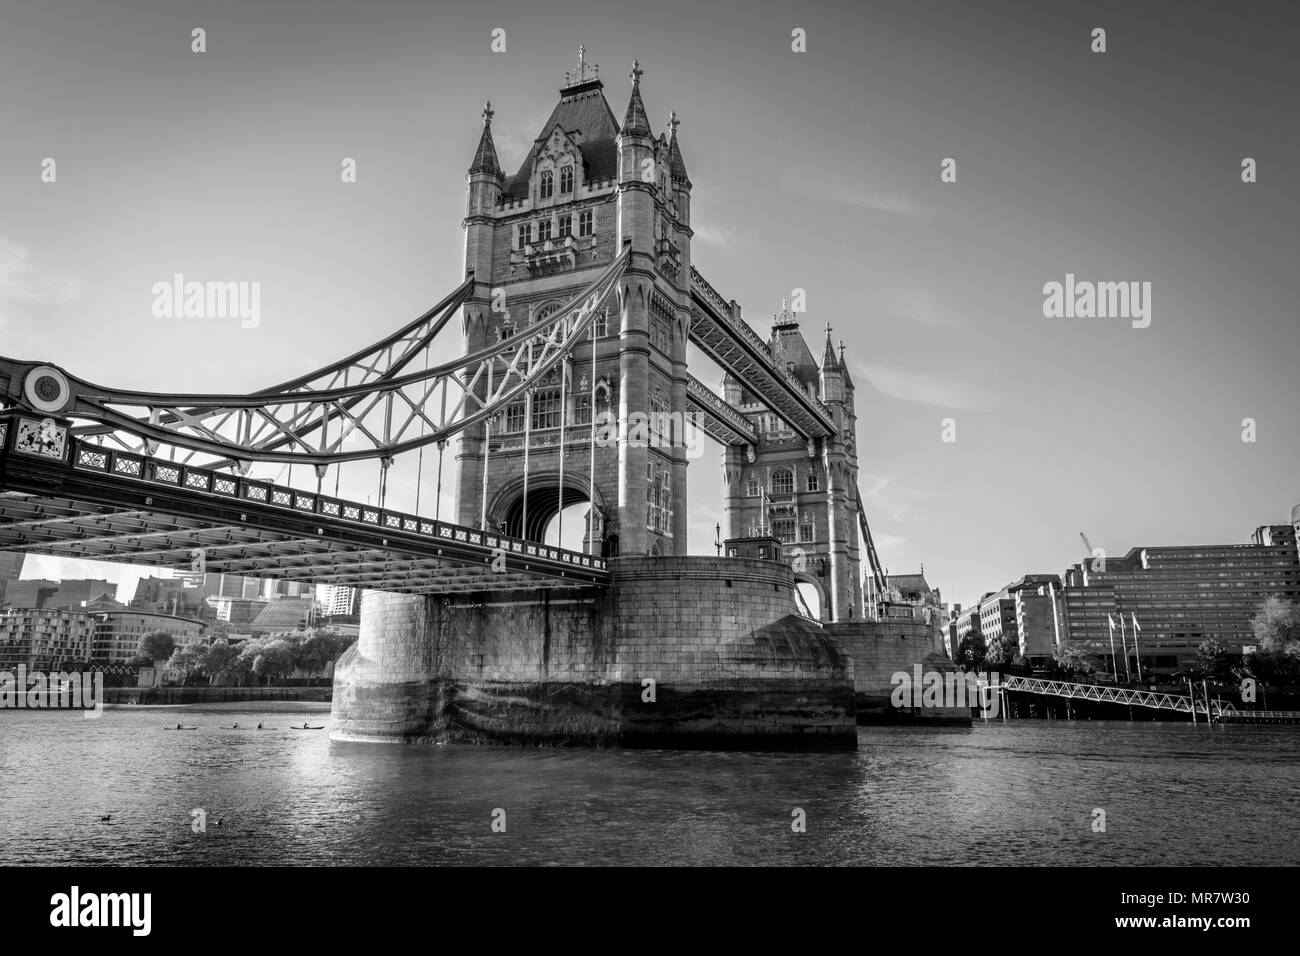 This is a black and white photo of Tower Bridge one of Londons Iconic land marks - Stock Image